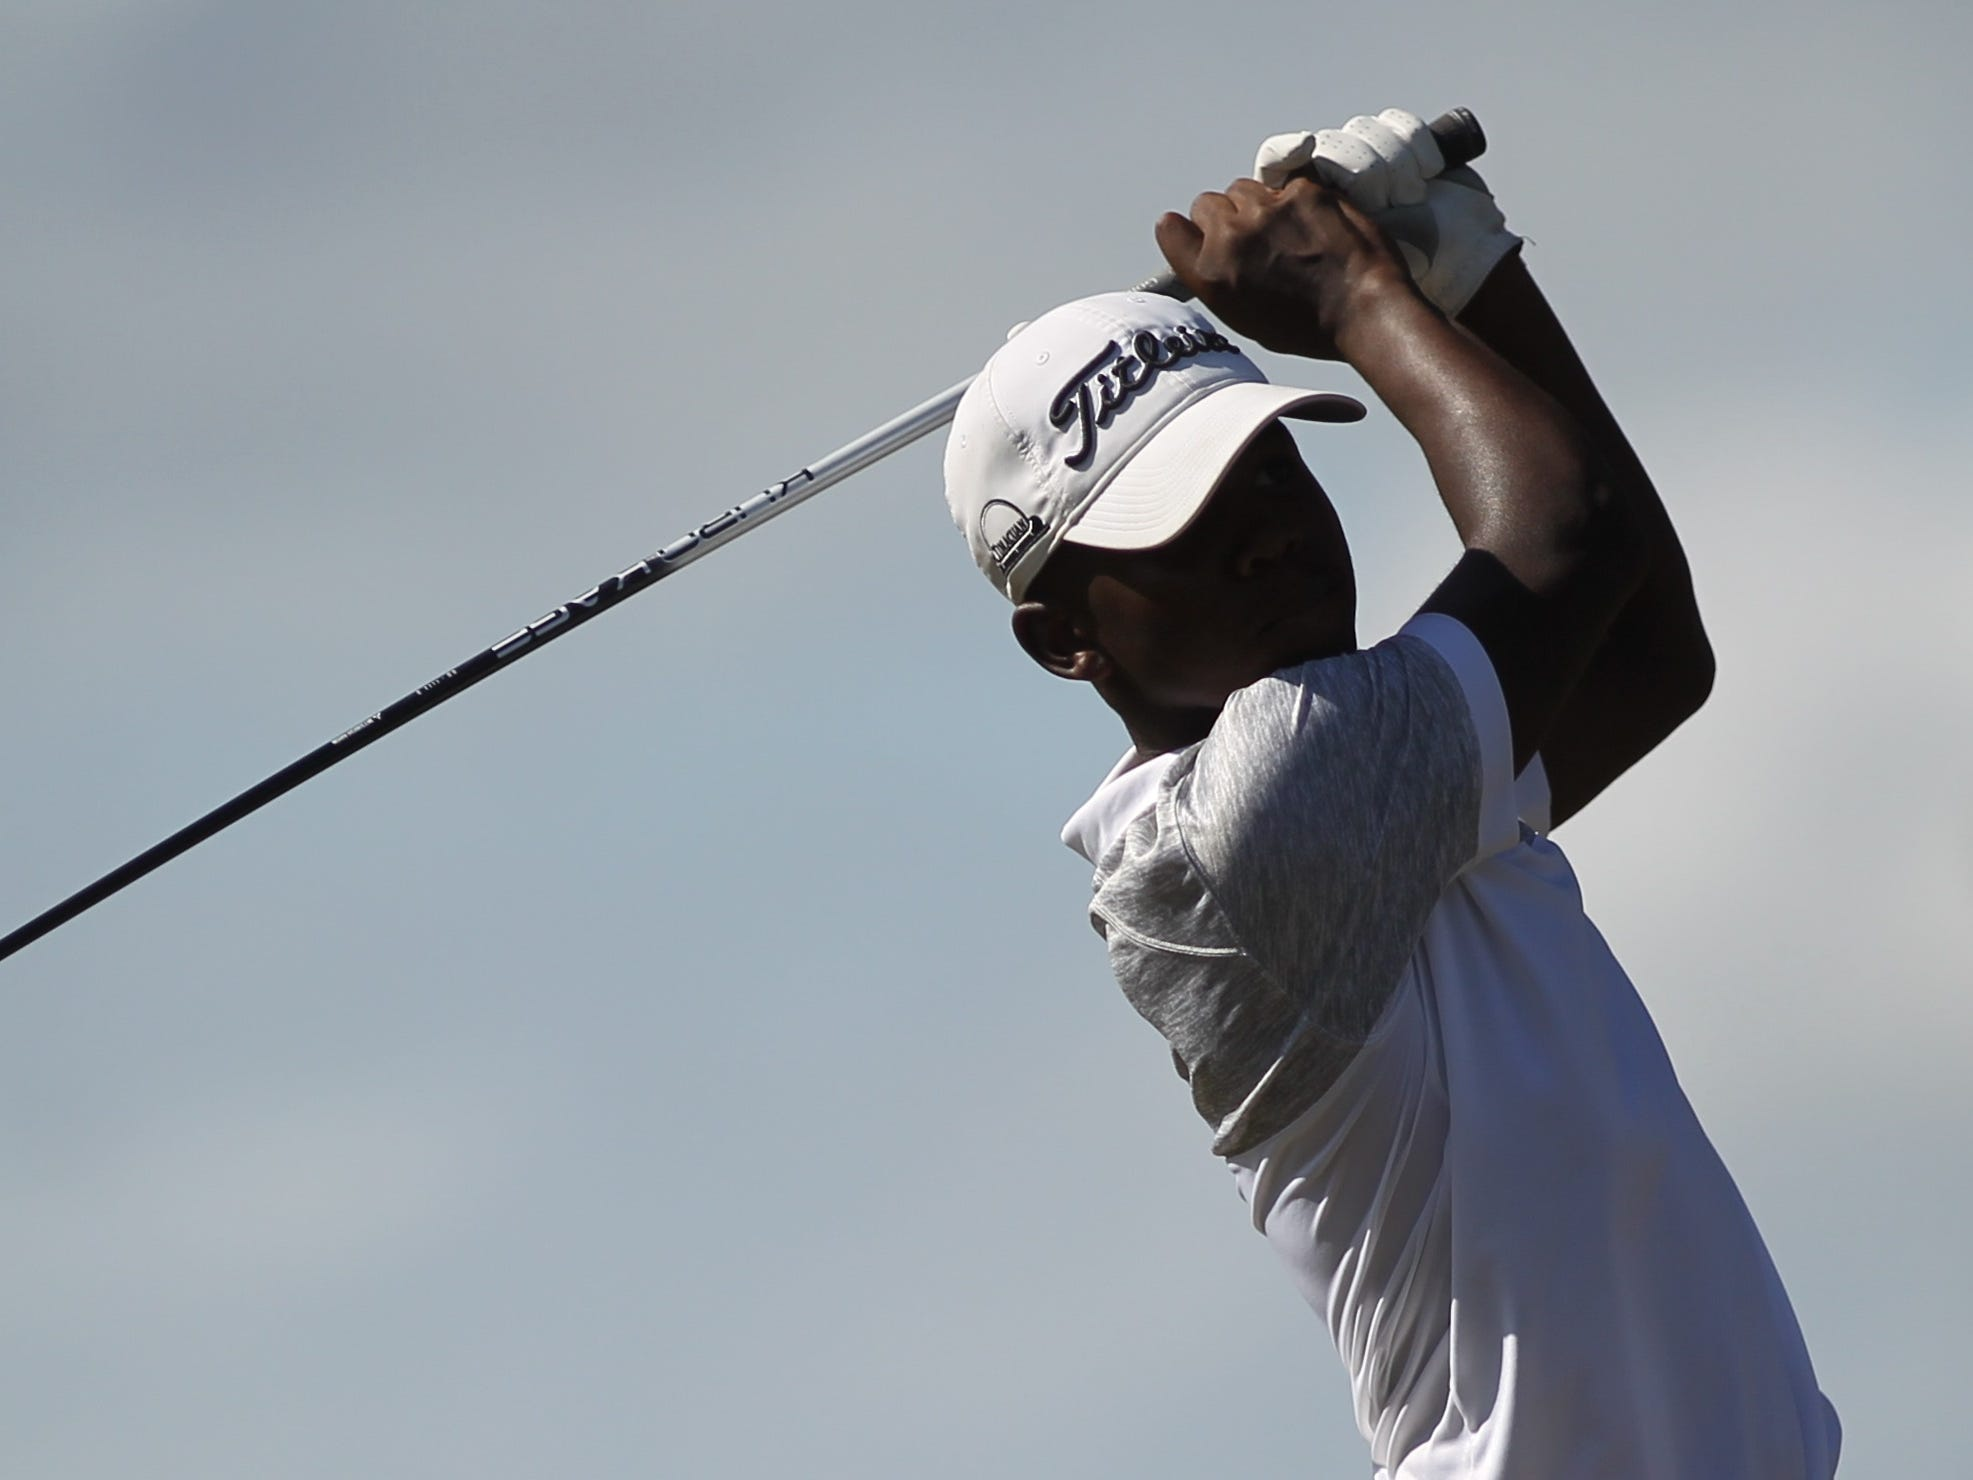 Leon junior Marquis Taylor watches a drive during the boys golf City Championship at Hilaman Golf Course on Monday, Oct. 1, 2018. Taylor shot a 1-under par 71 to tie for second.